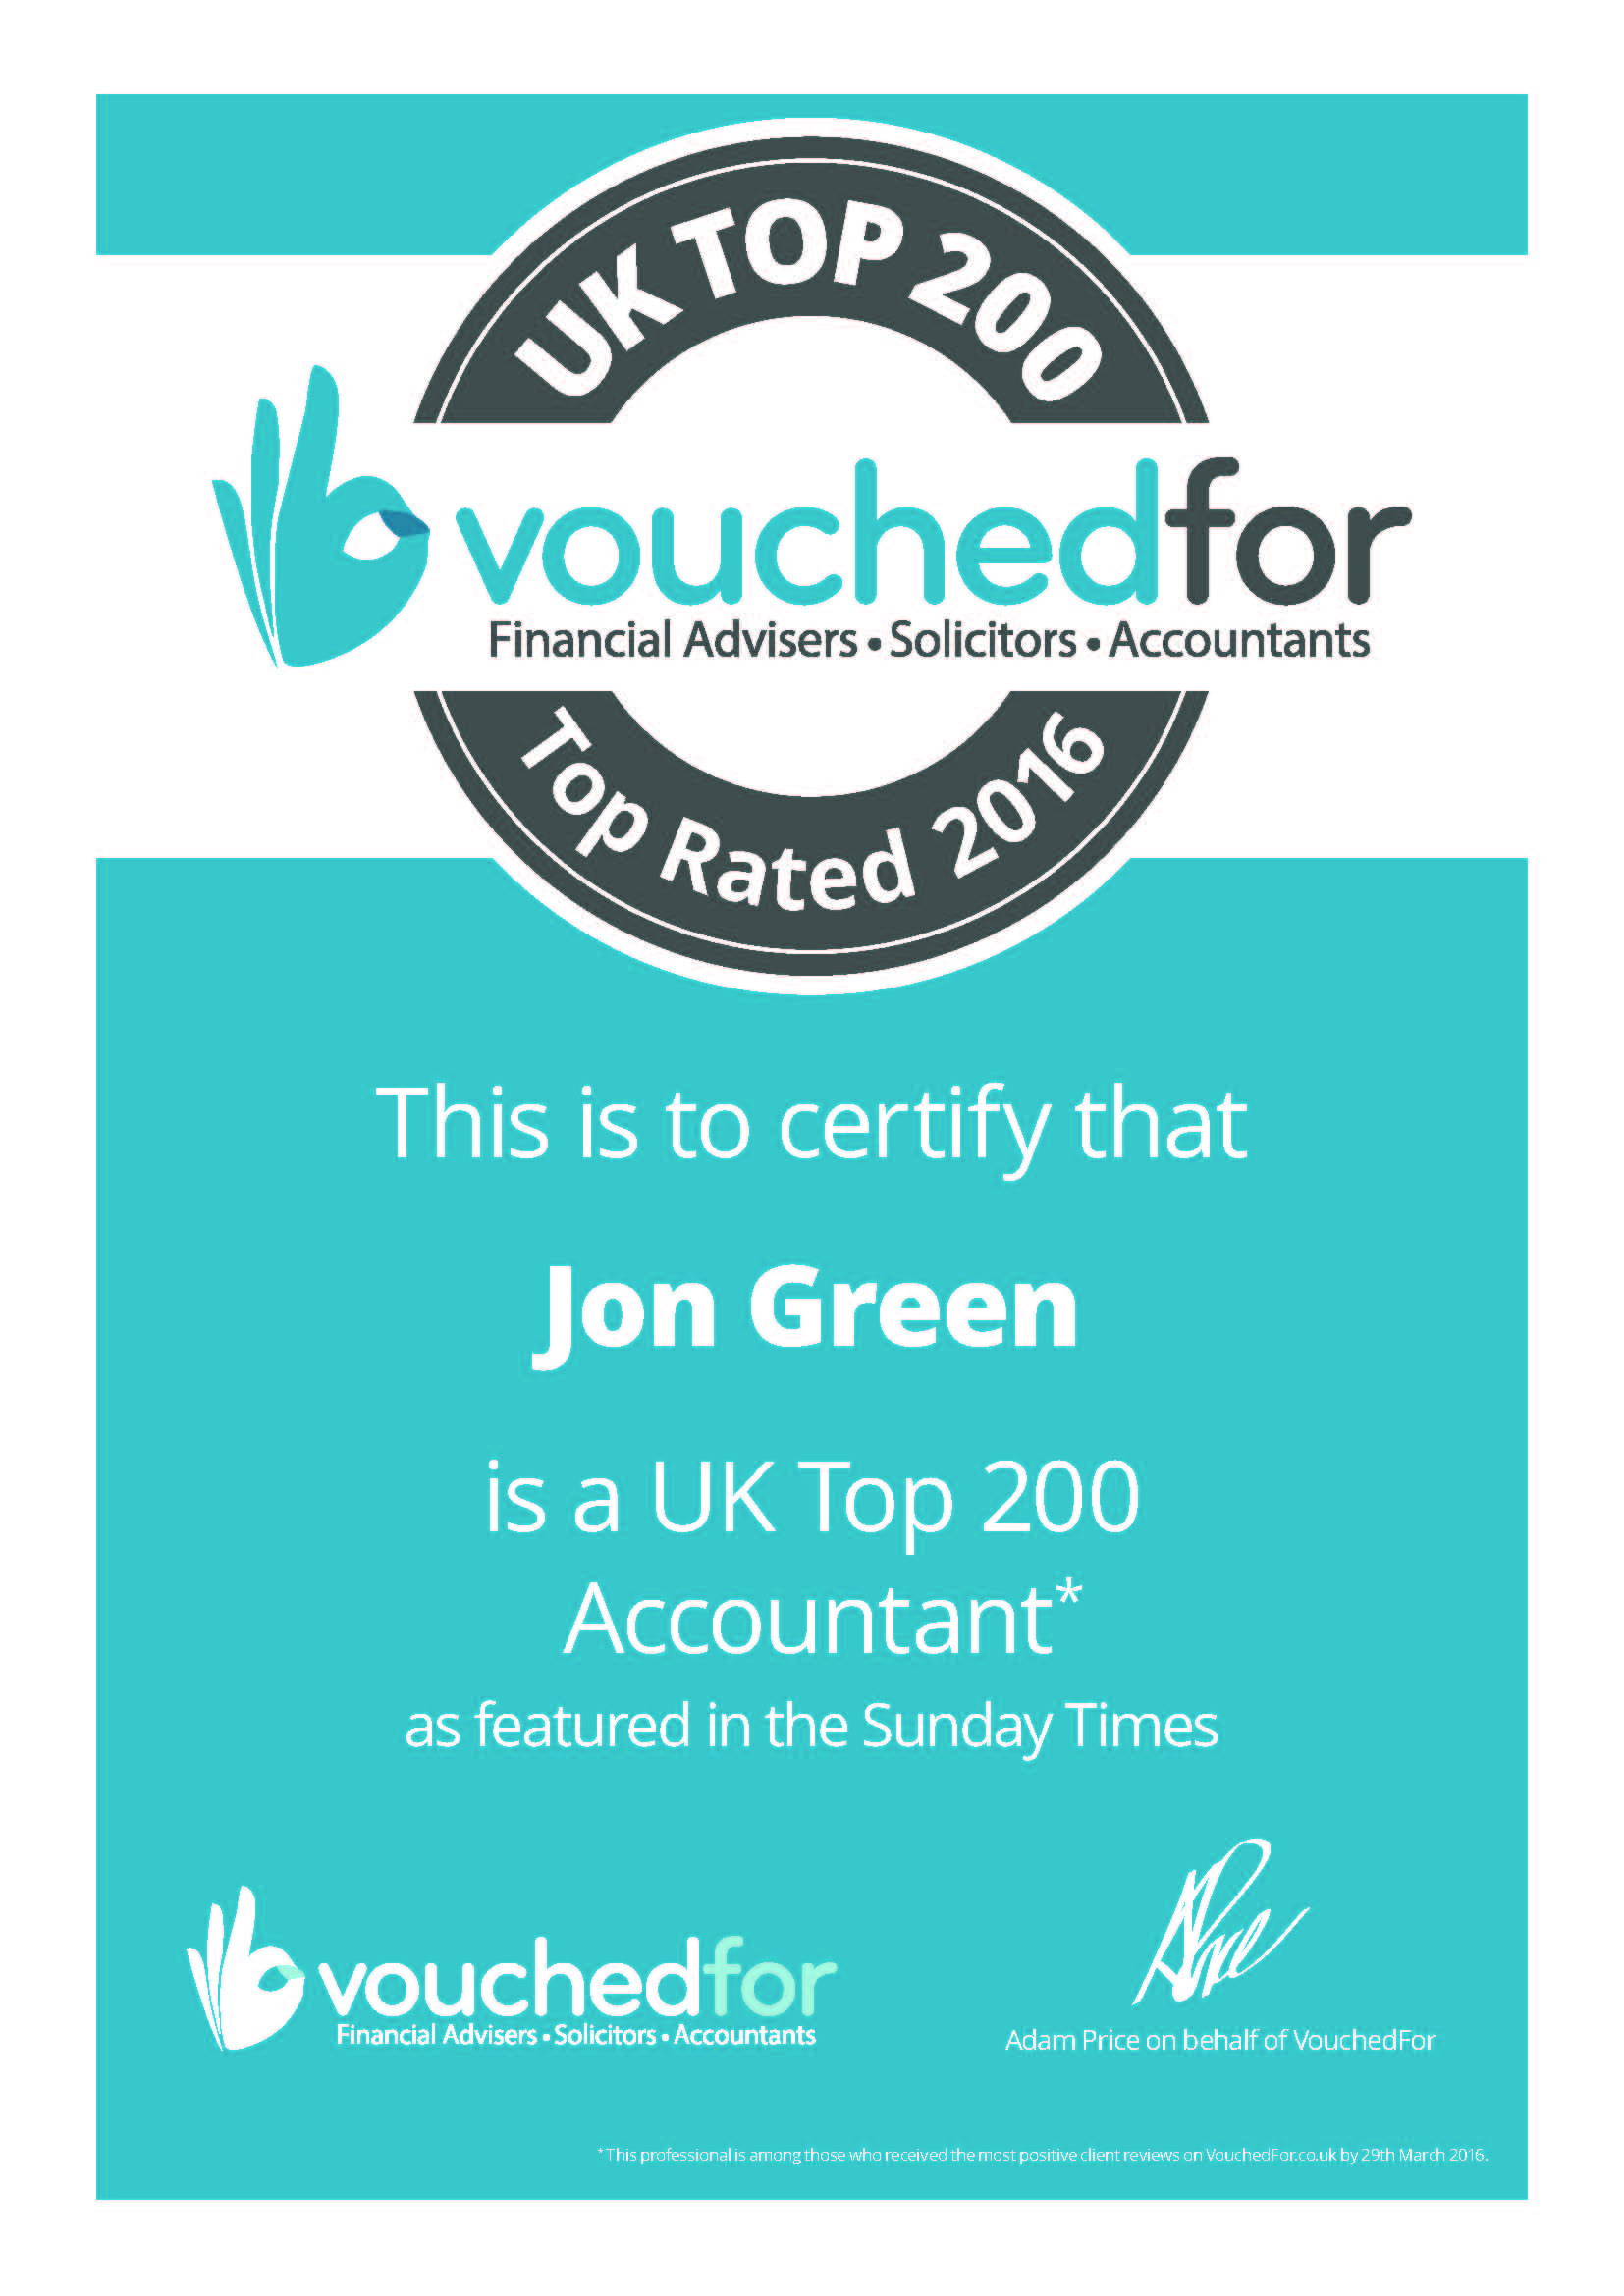 Top 200 UK Accountant certificate from VouchedFor